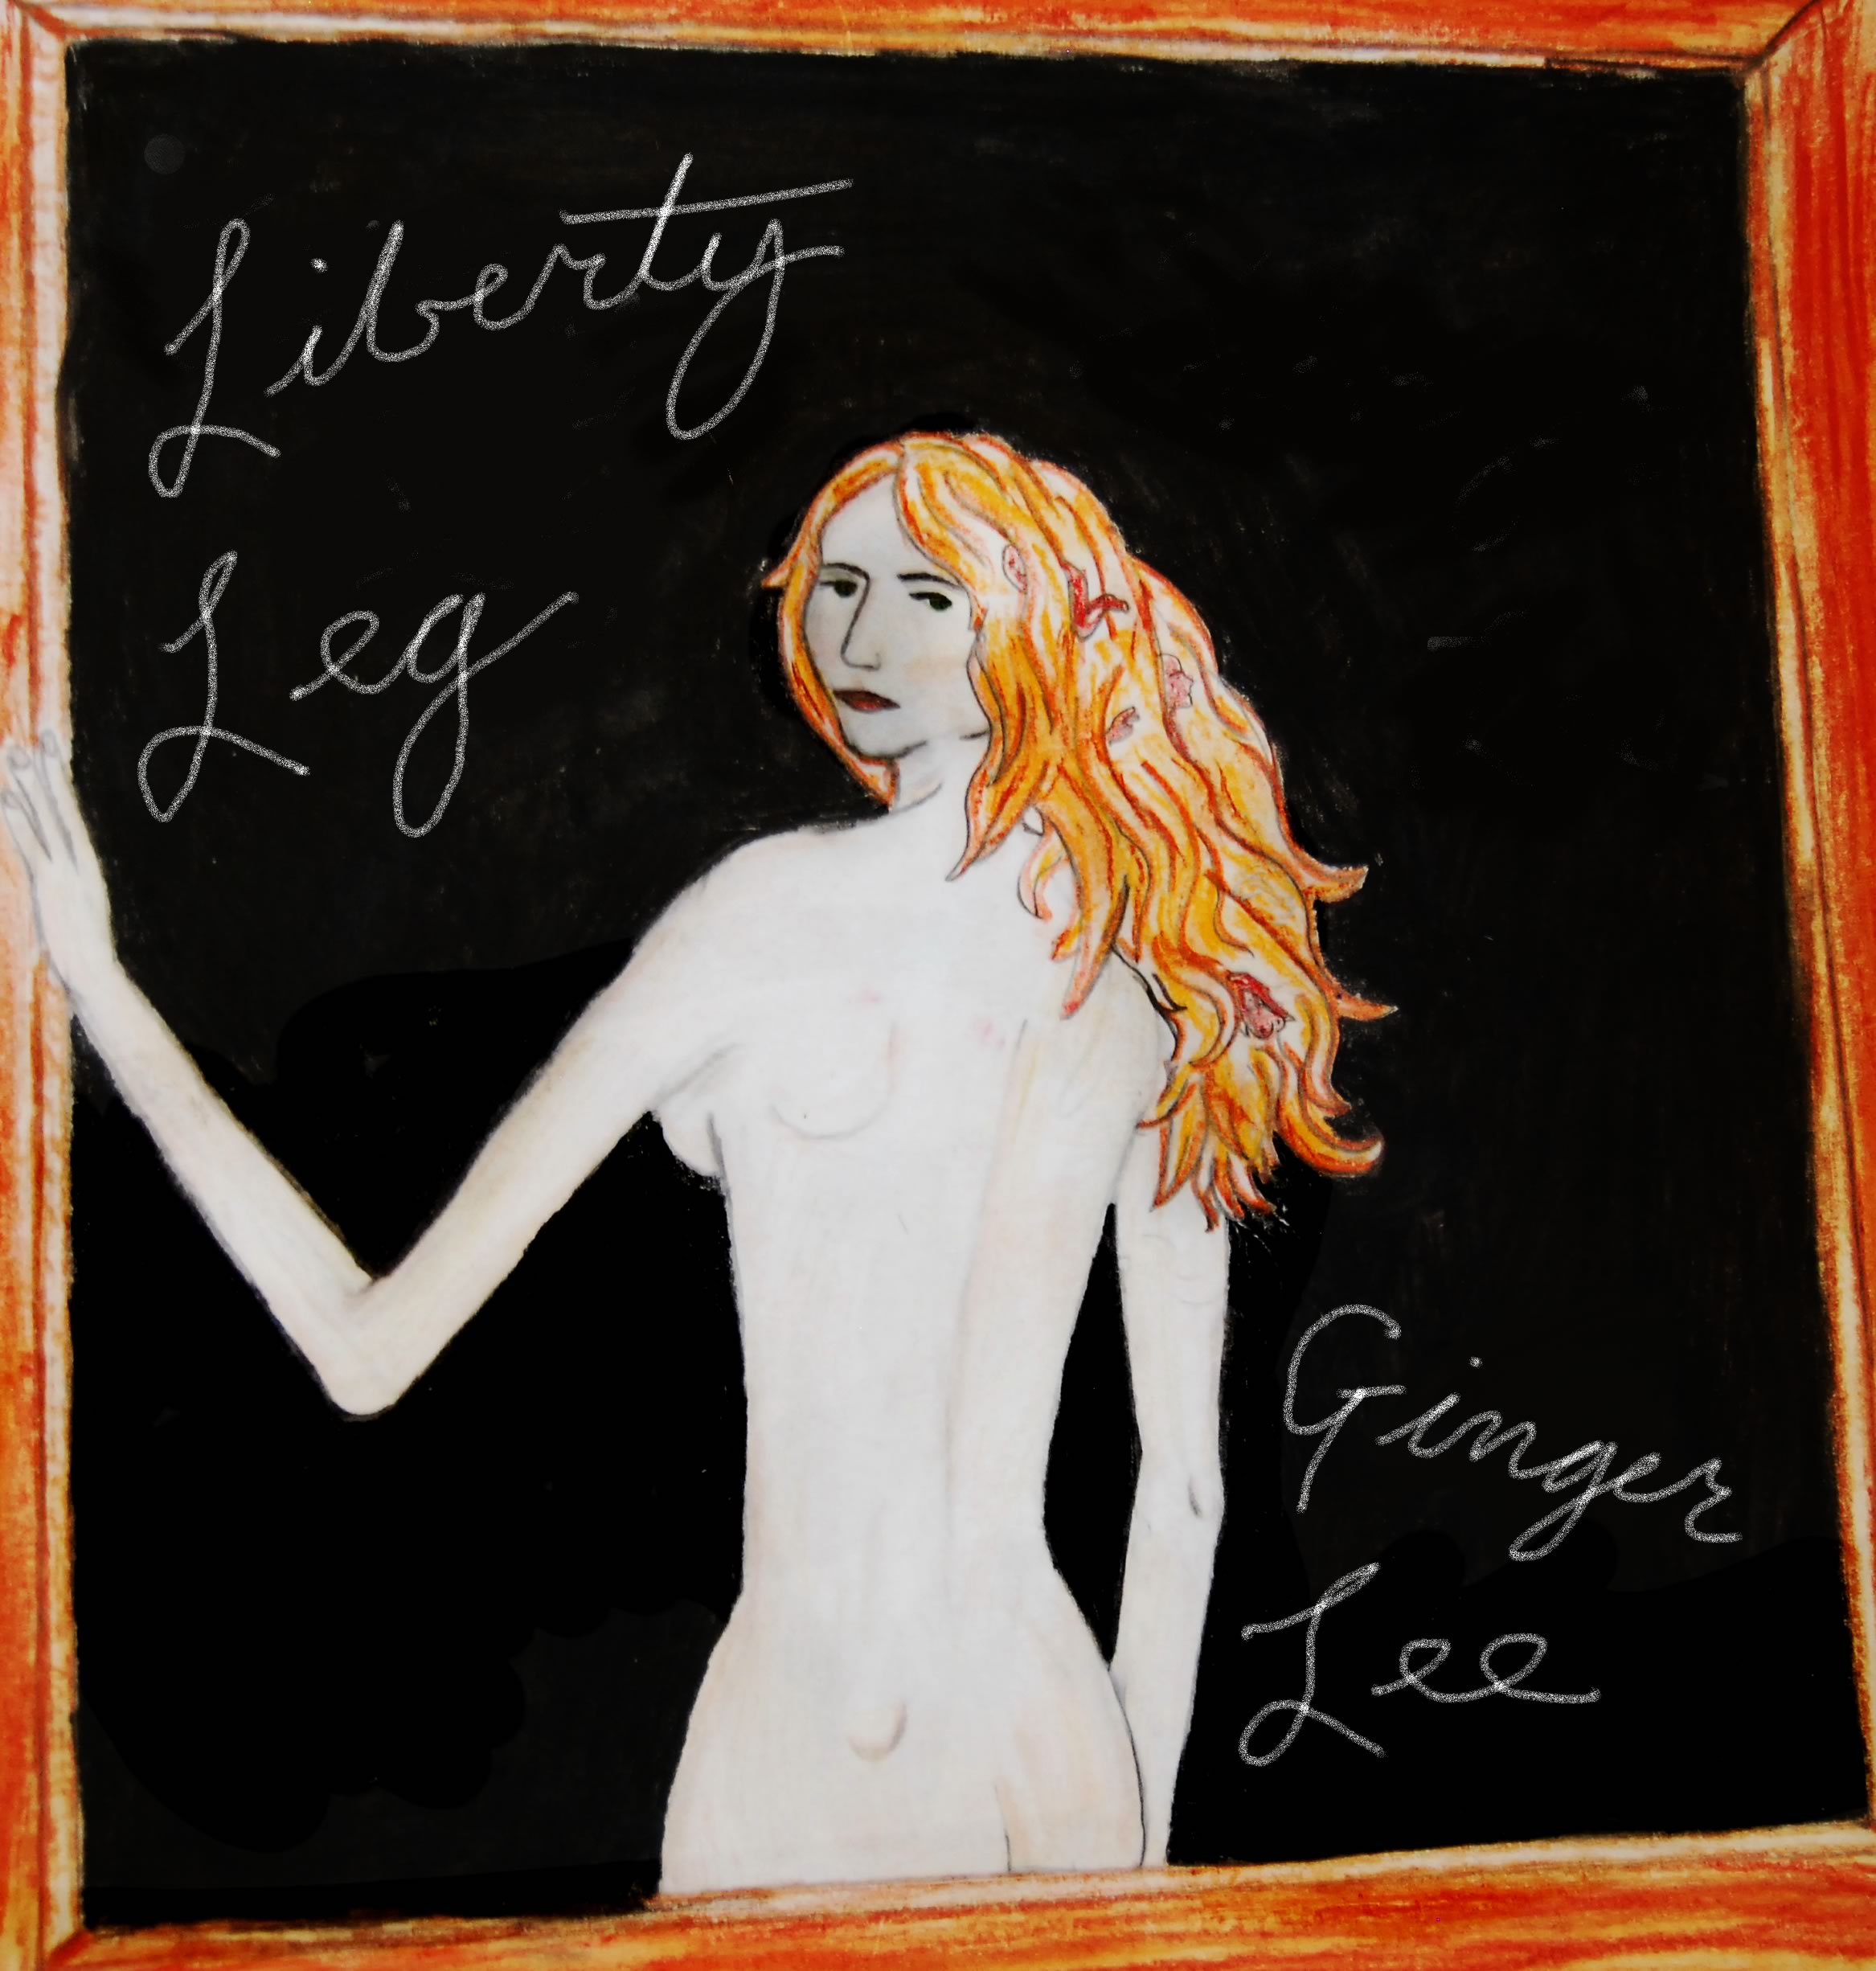 Liberty Leg - Ginger Lee